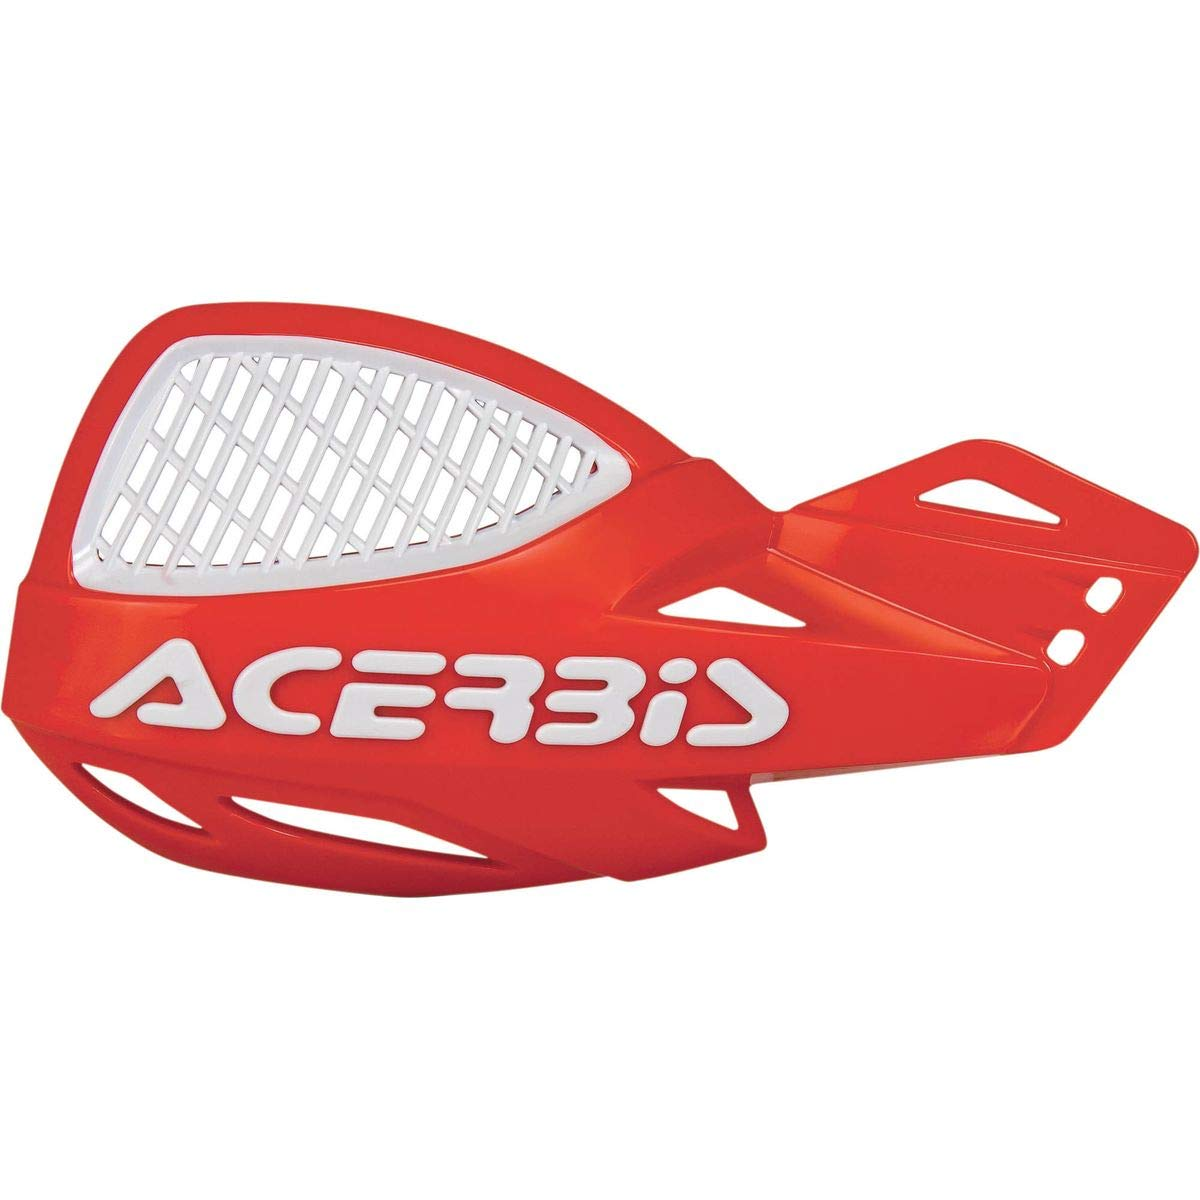 Acerbis Uniko MX Vented Handguards (RED/White) by Acerbis